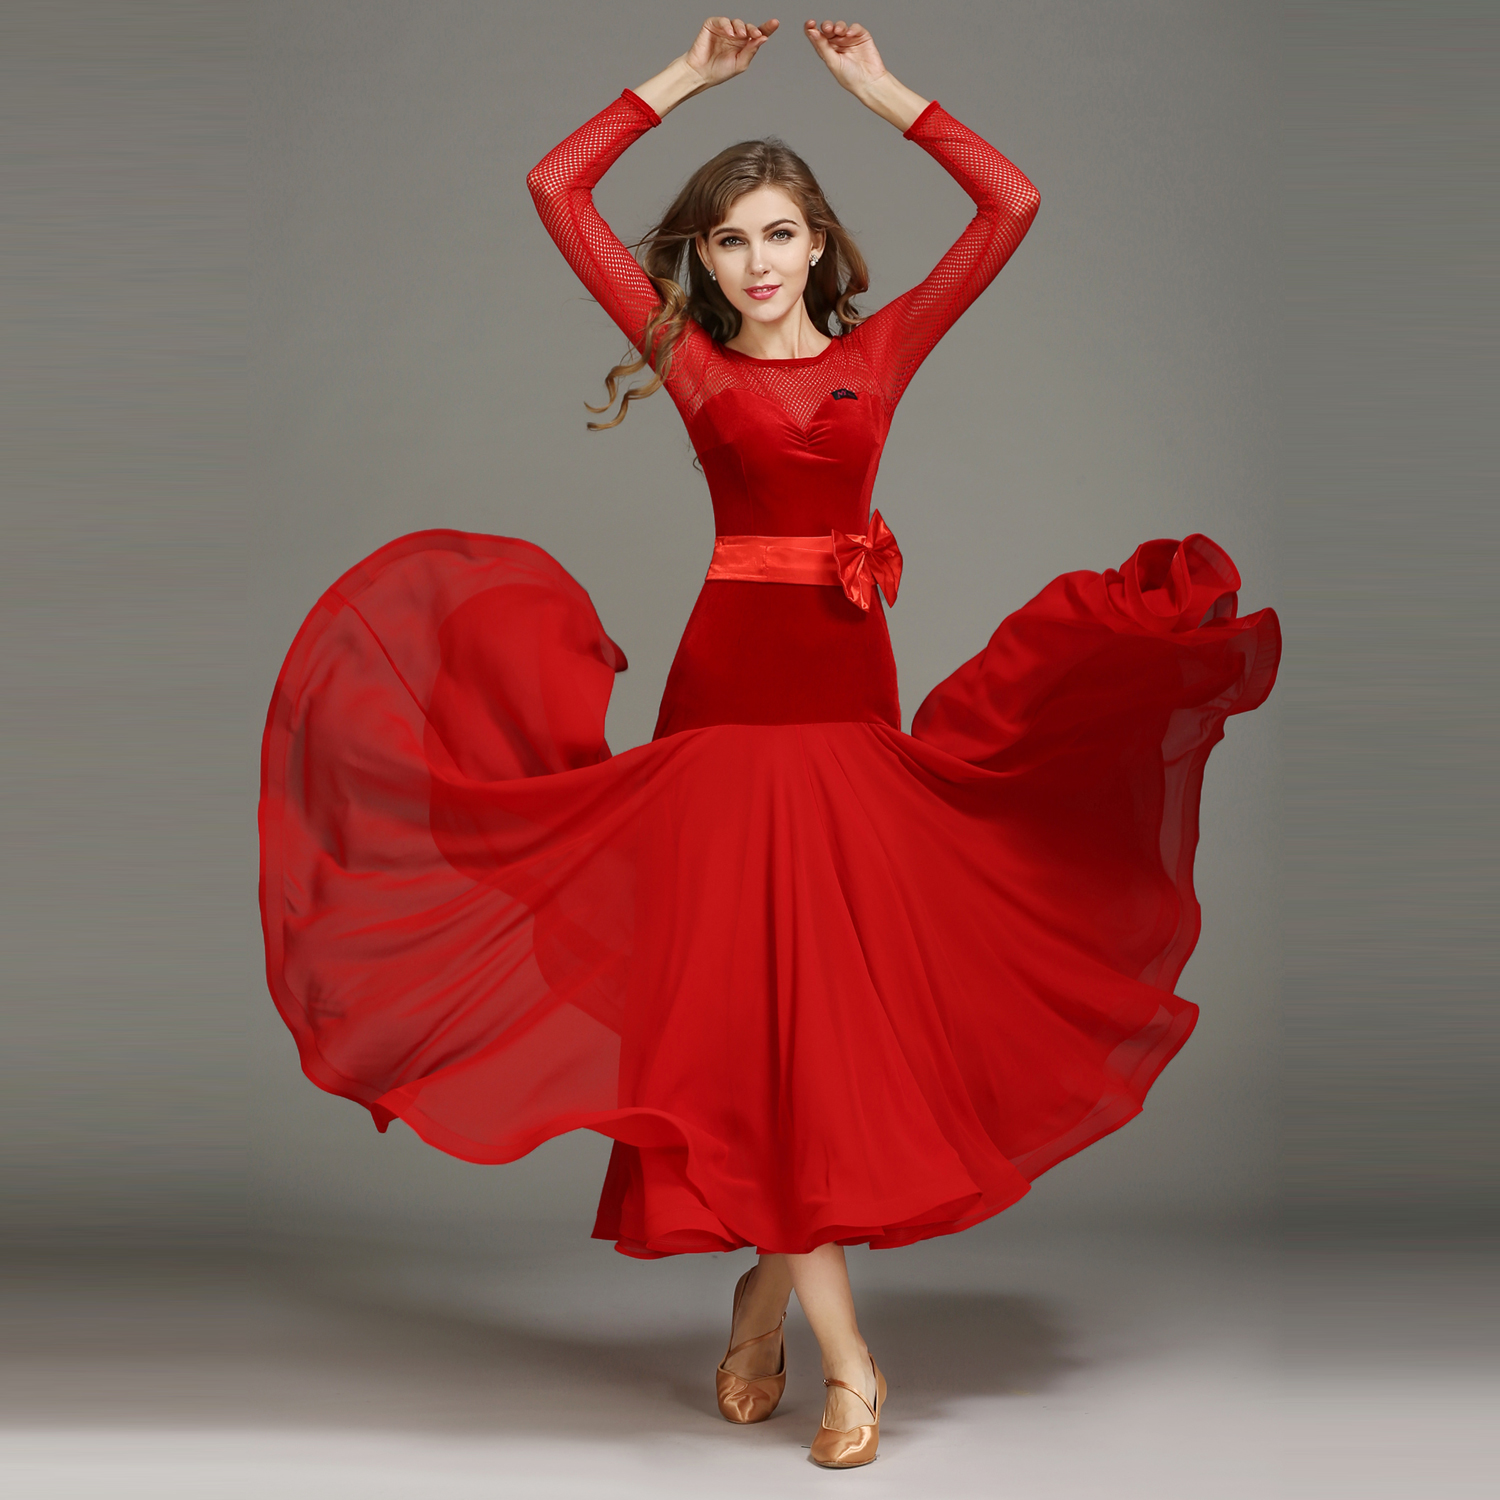 Modern Dance Costume Women Lady Adult Waltzing Tango Bow Dancing Dress Ballroom Costume Evening Party Dress портативная bluetooth колонка jbl go 2 red